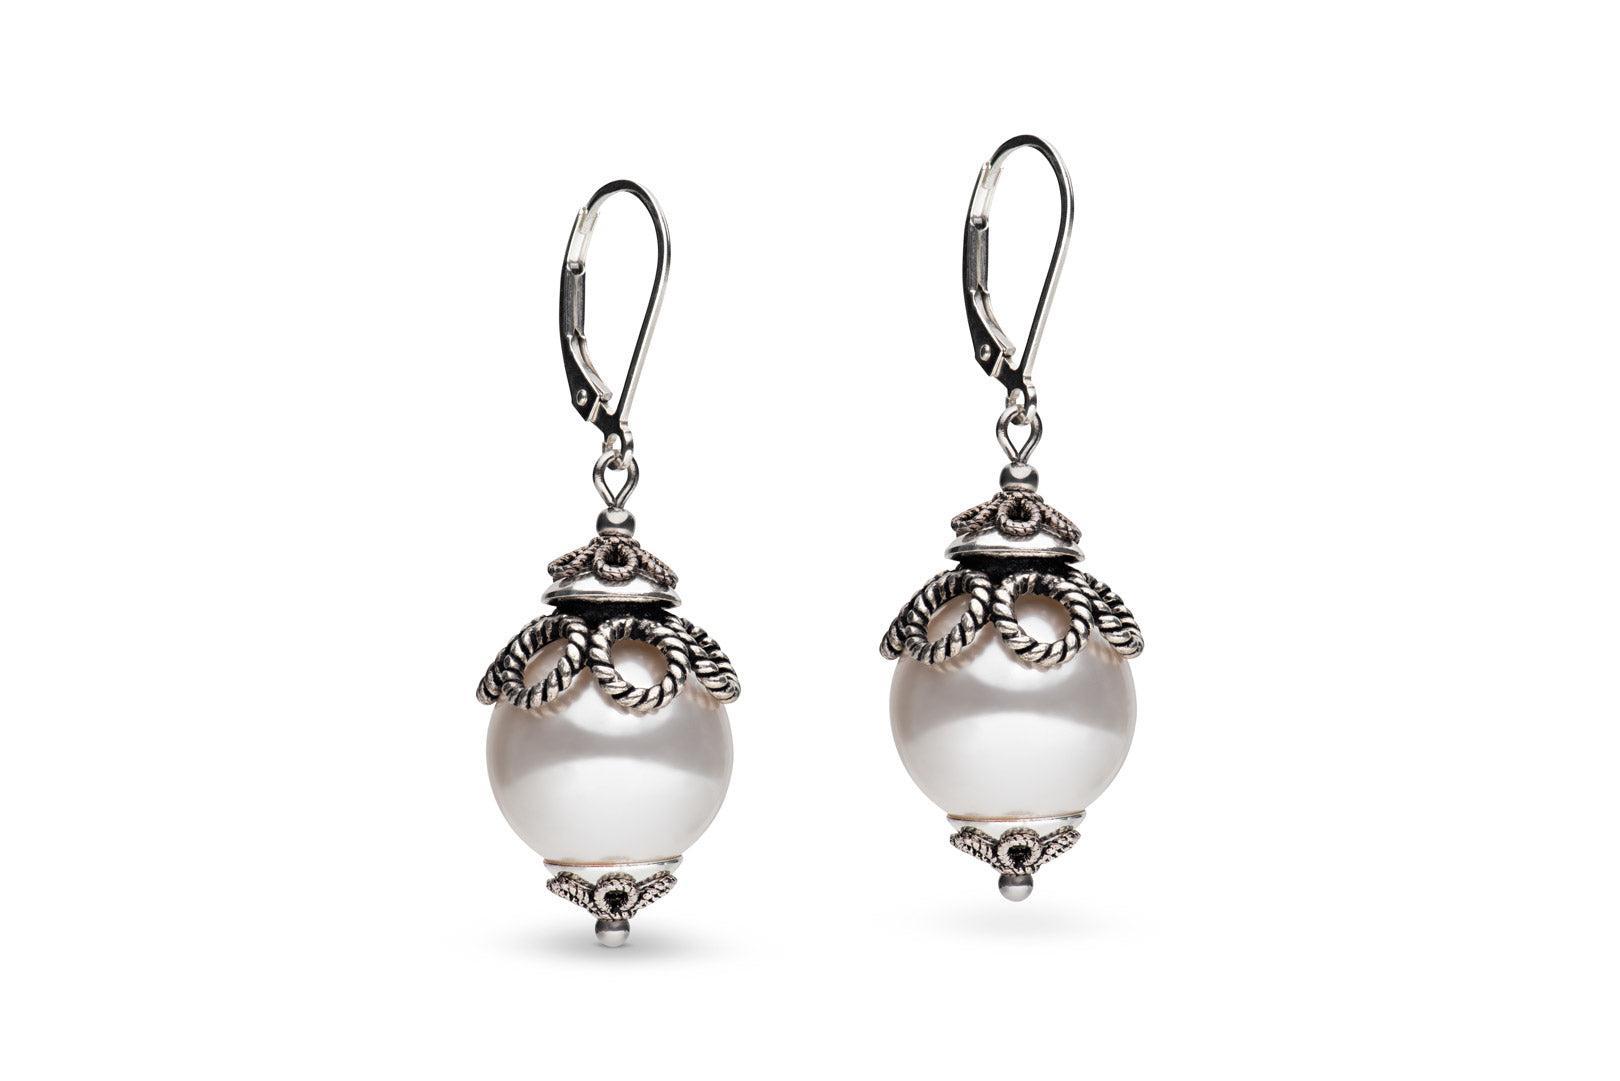 Sterling silver & Swarovski pearl earrings